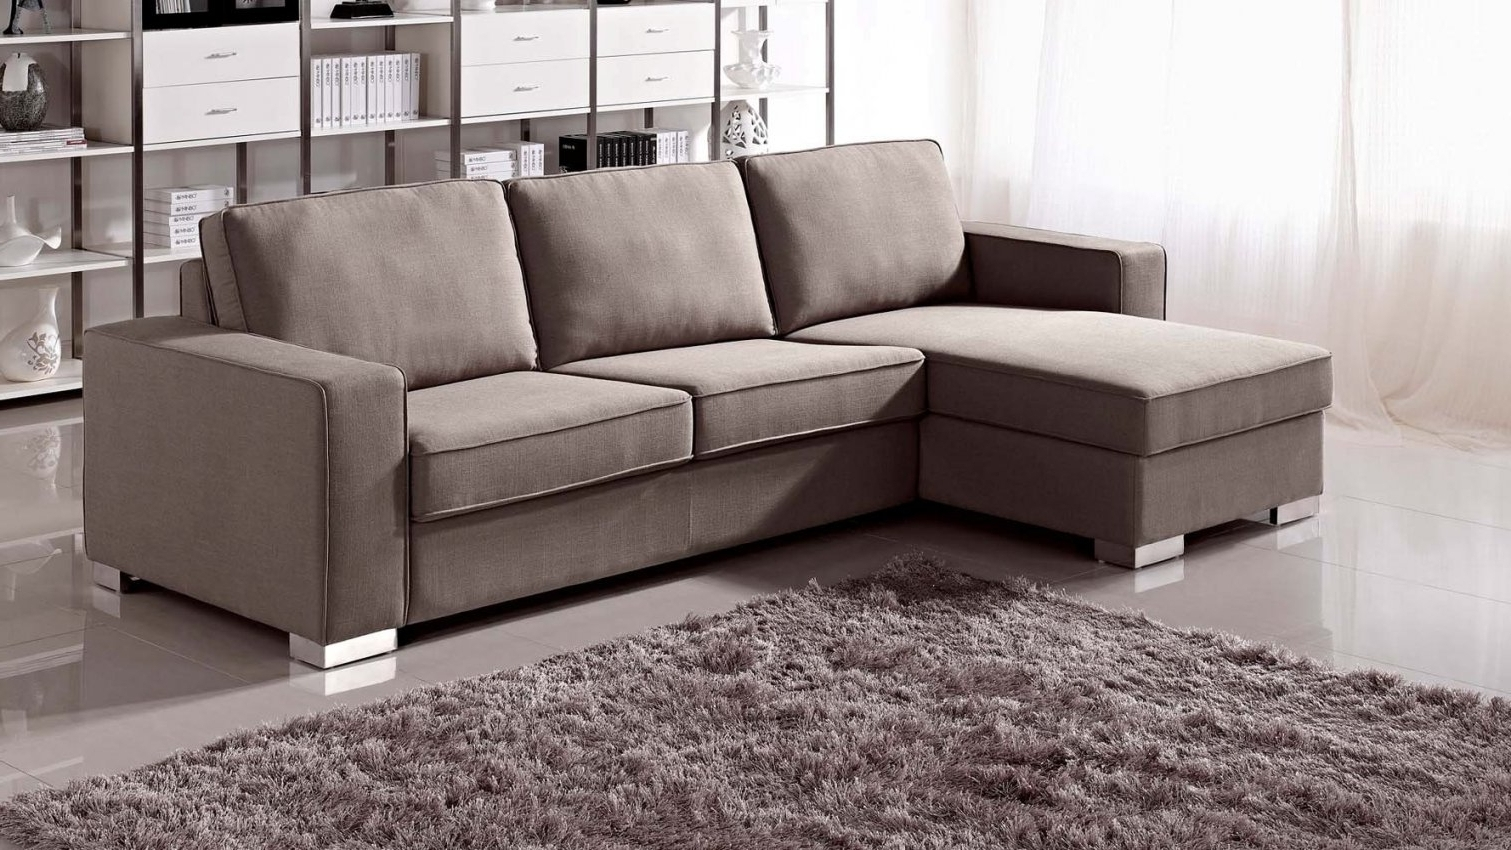 Most Recently Released Sectional Sleeper Sofa With Chaise 29 In Sofa Design Ideas With Sectional Sleeper Sofas With Chaise (View 9 of 15)